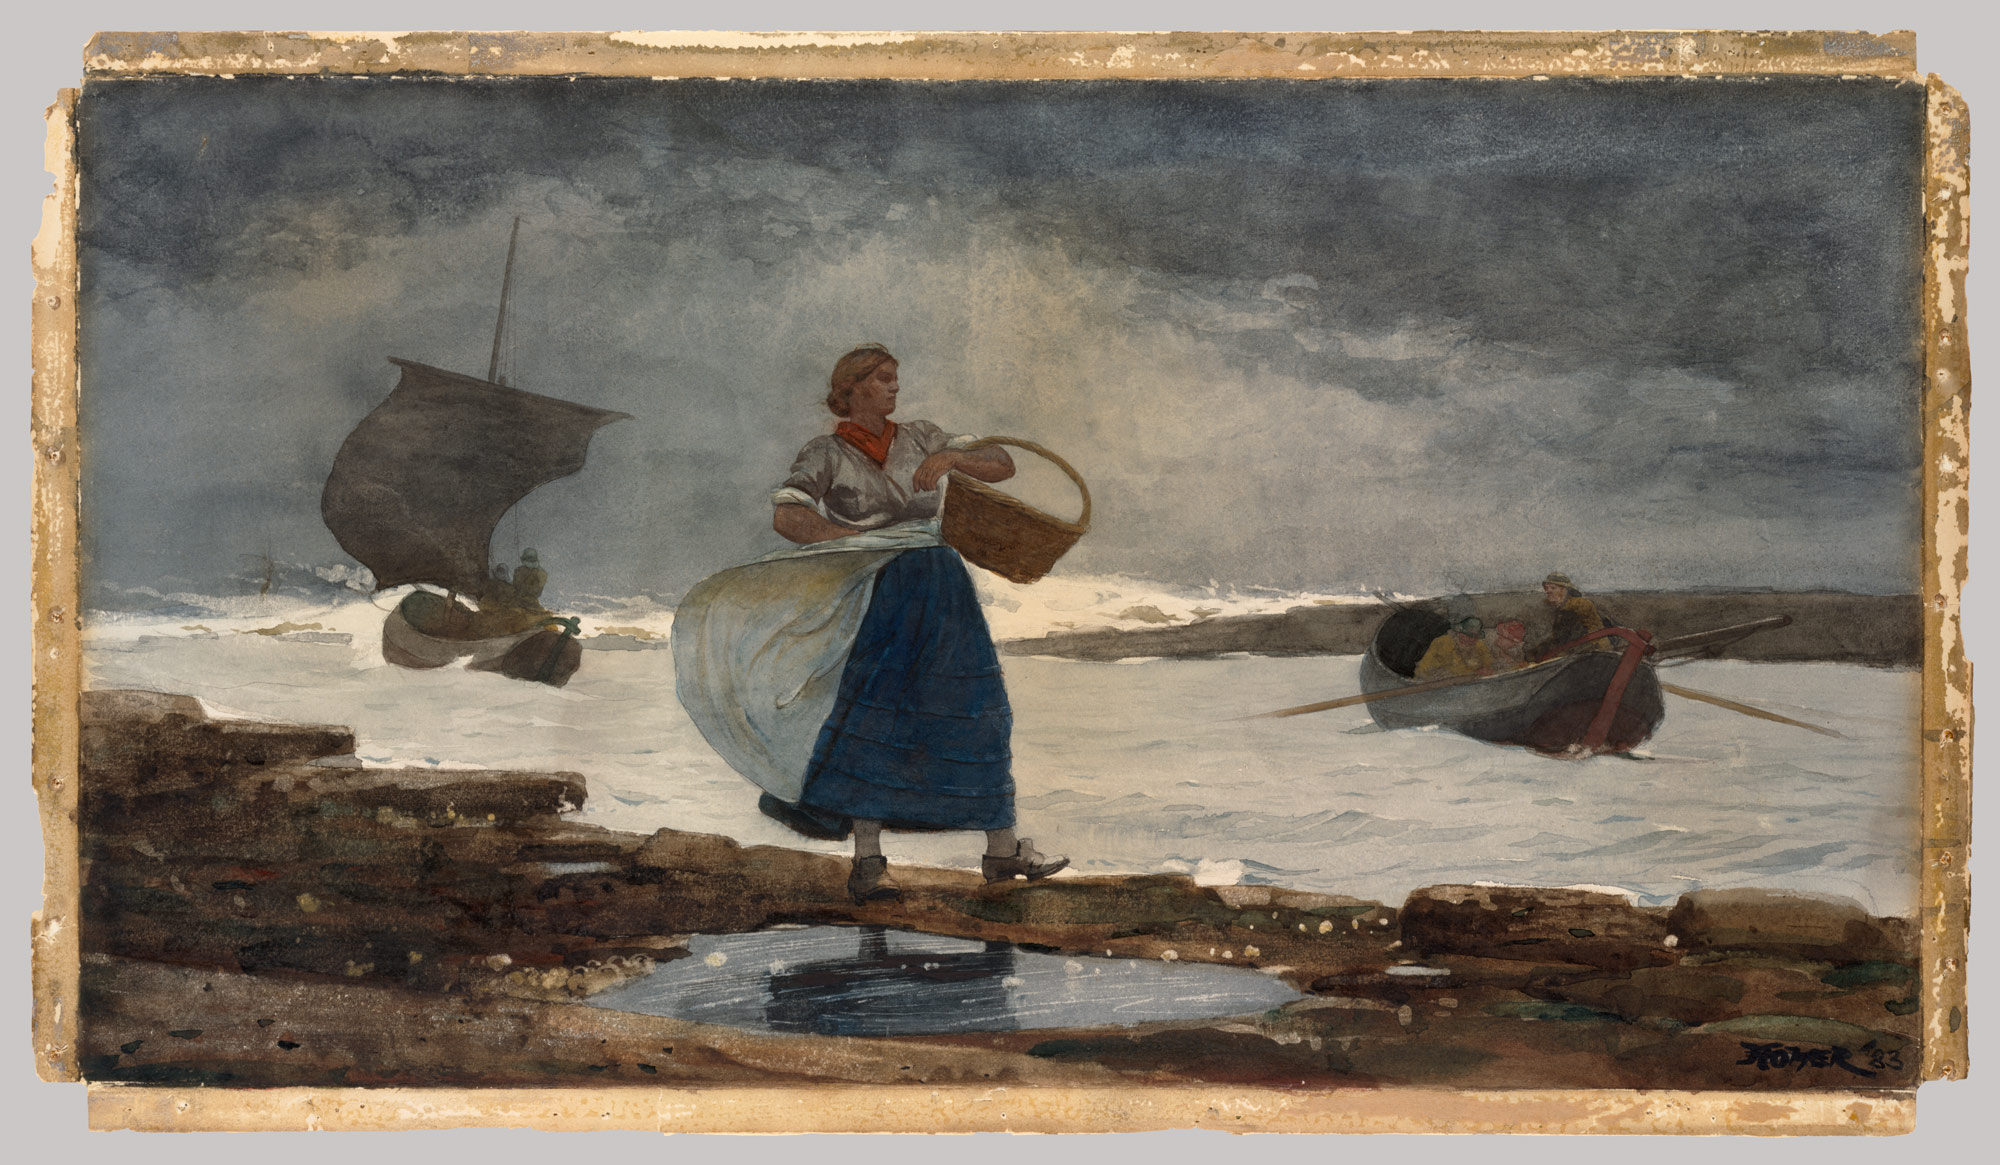 Inside the Bar by Winslow Homer, 1883, Watercolor and graphite on off-white wove paper, 16 x 29 in.